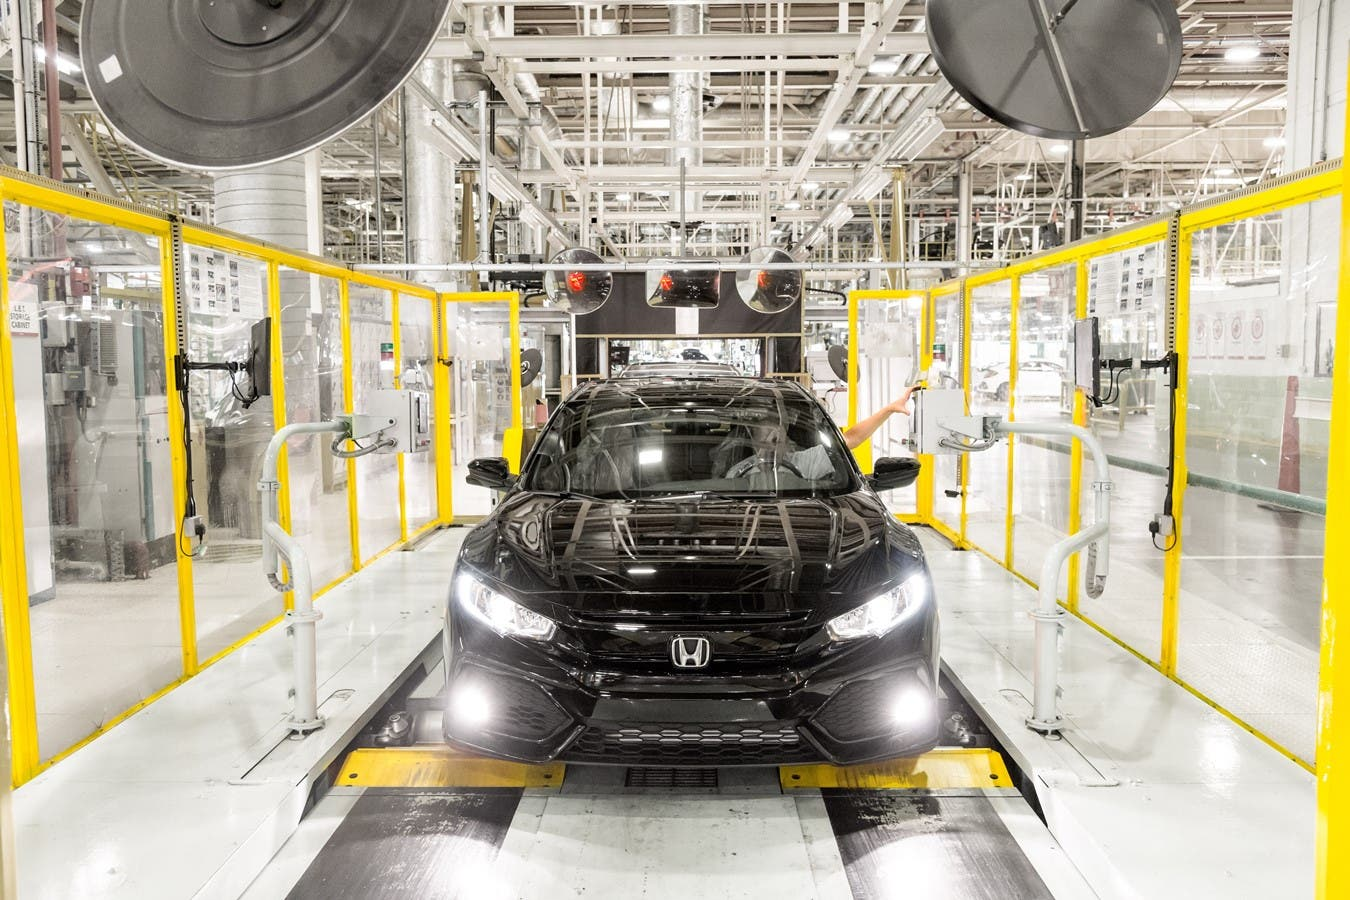 Business secretary to convene taskforce over Honda closure